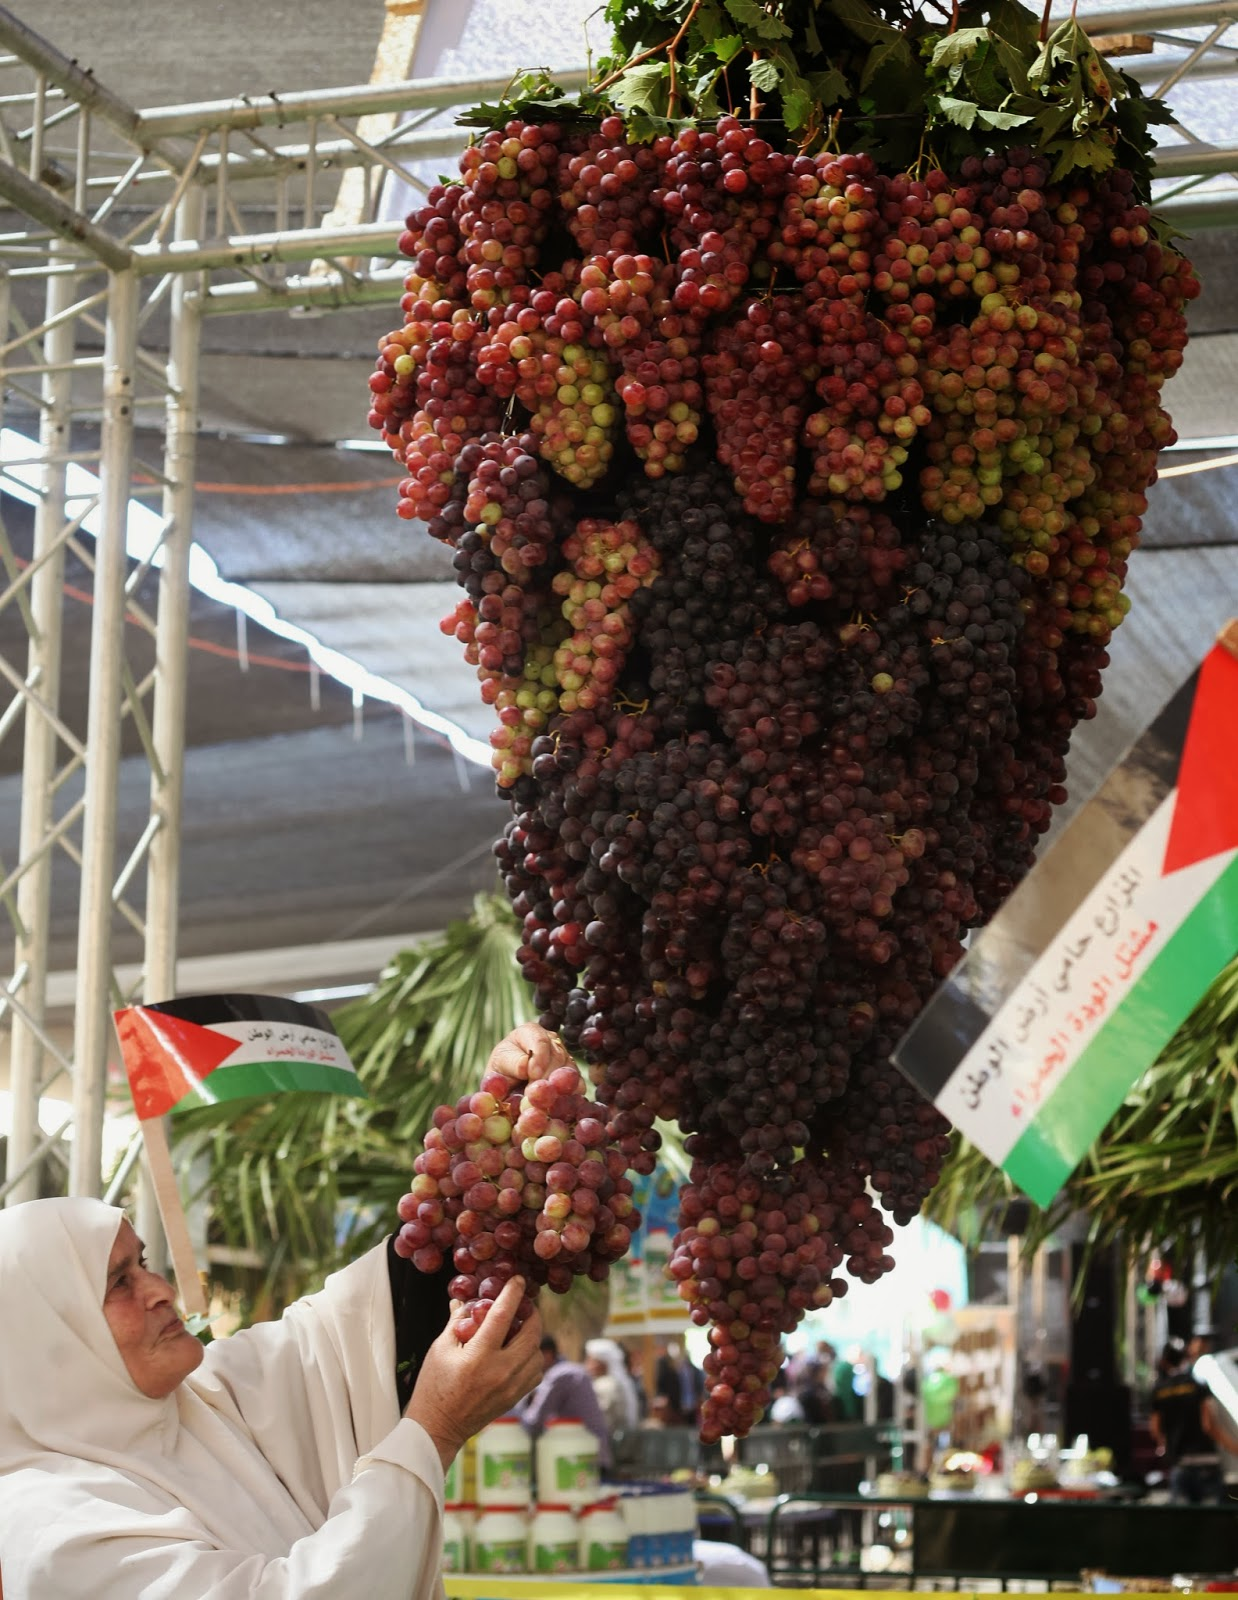 Agriculture, Festival, Fruit, Grapes, Hebron, Palestine, News, Offbeat, Halhul, Exhibition, Trade Show, Business, Economy,